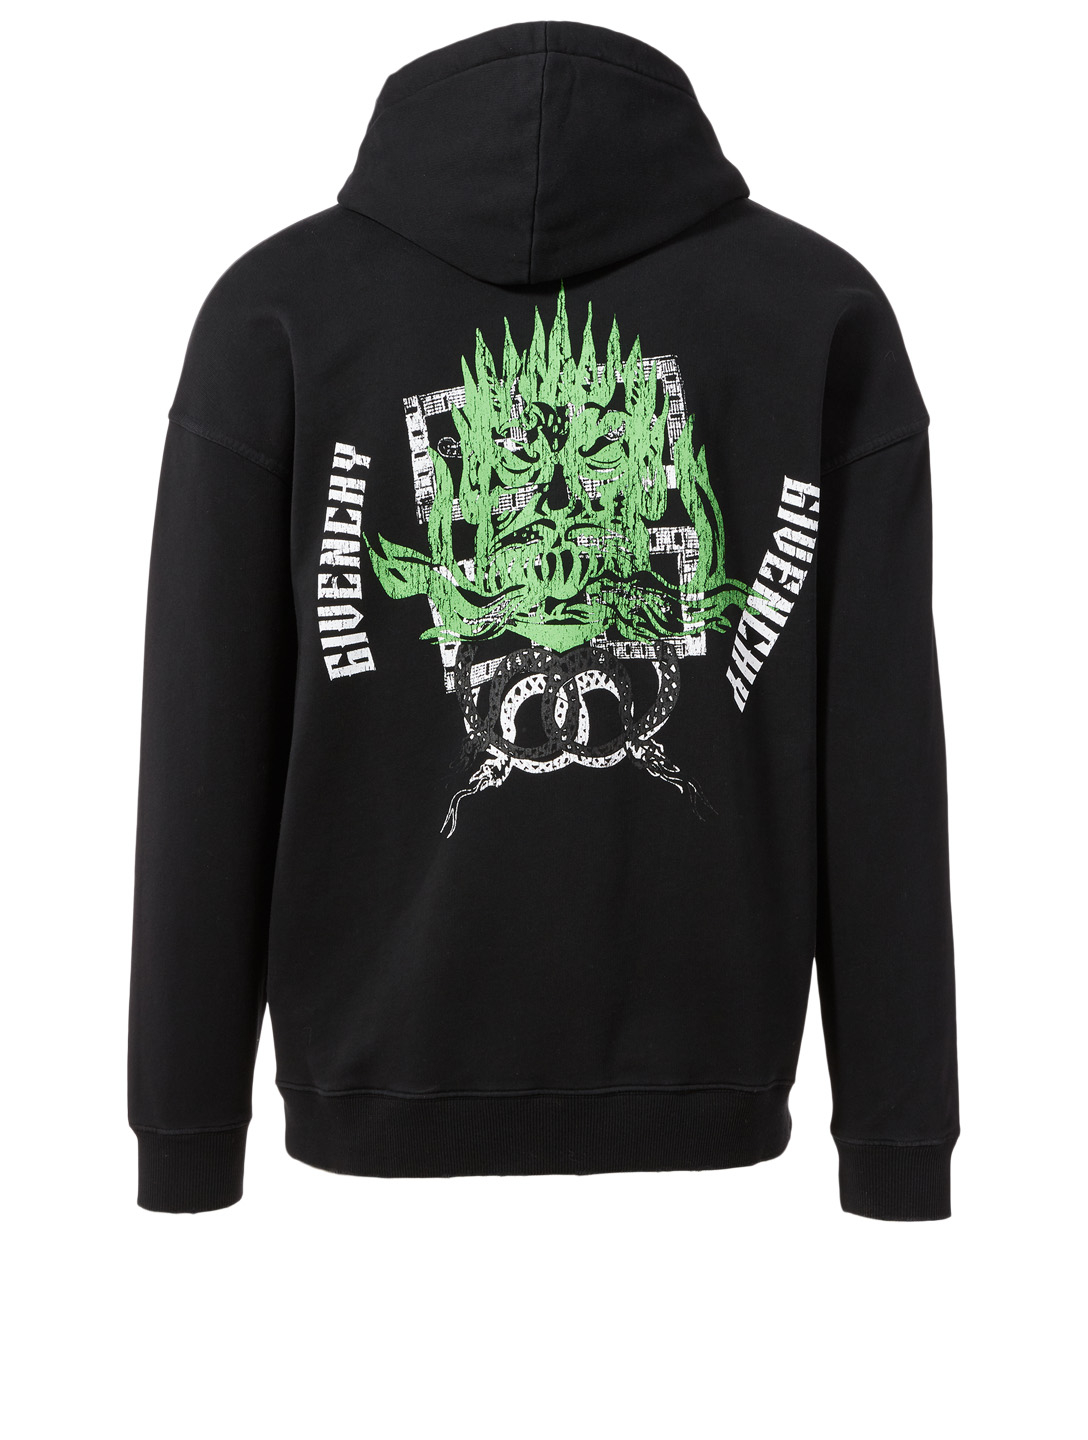 GIVENCHY Snake Graphic Hoodie Men's Black